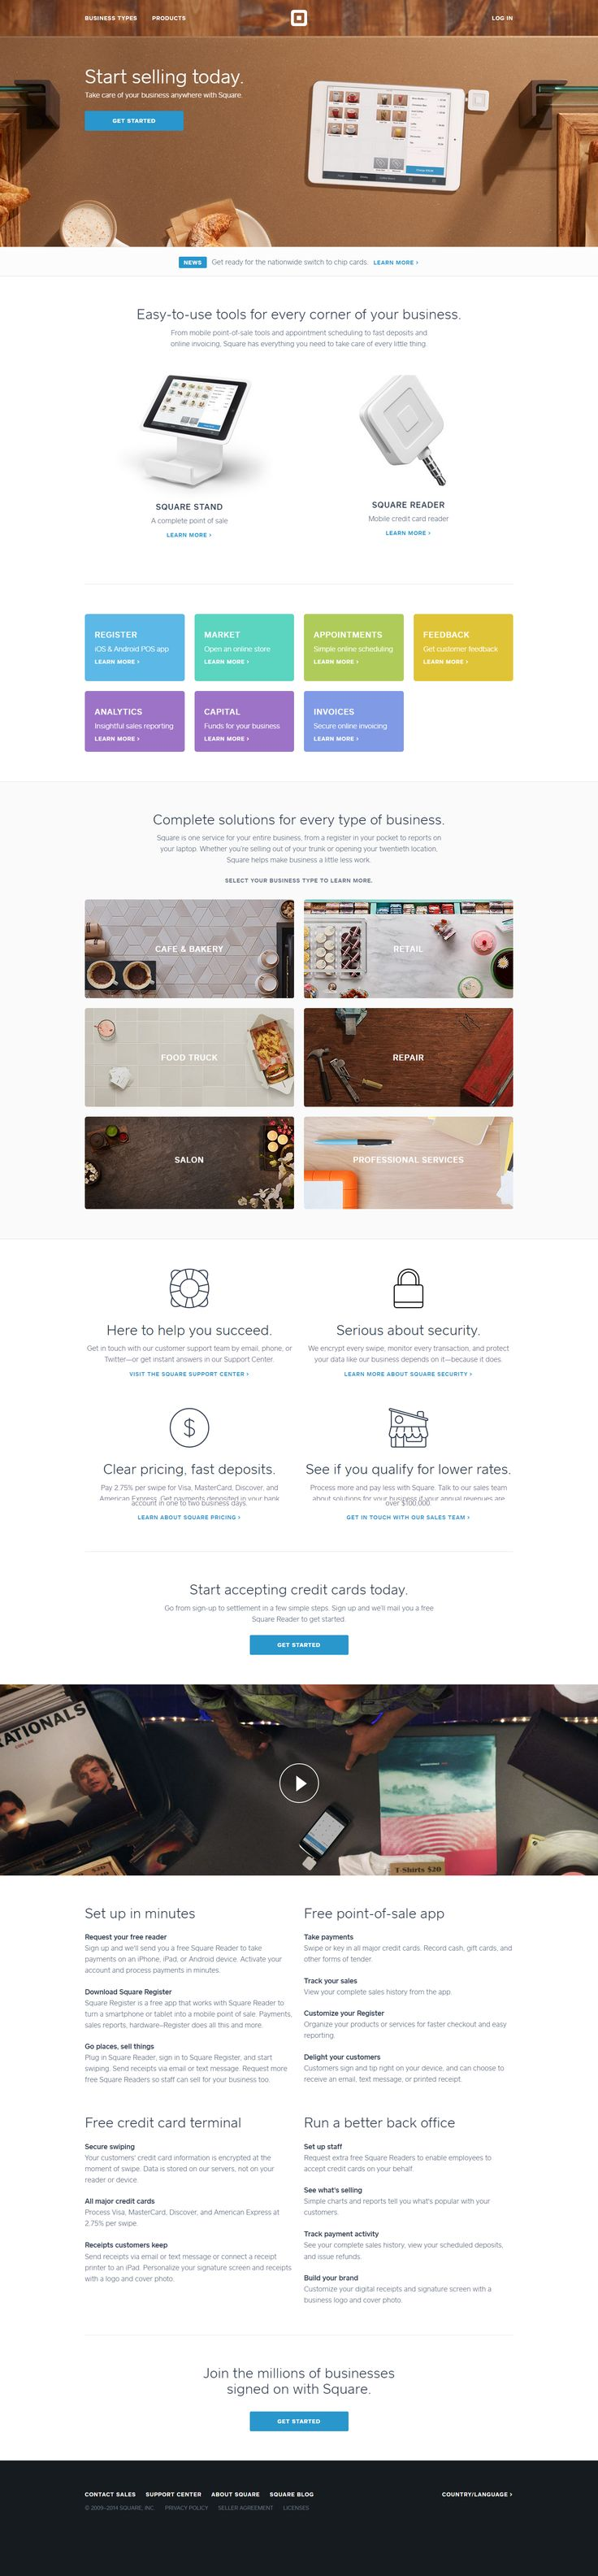 263 best credit card processing images on pinterest square credit card processing business solutions magicingreecefo Gallery